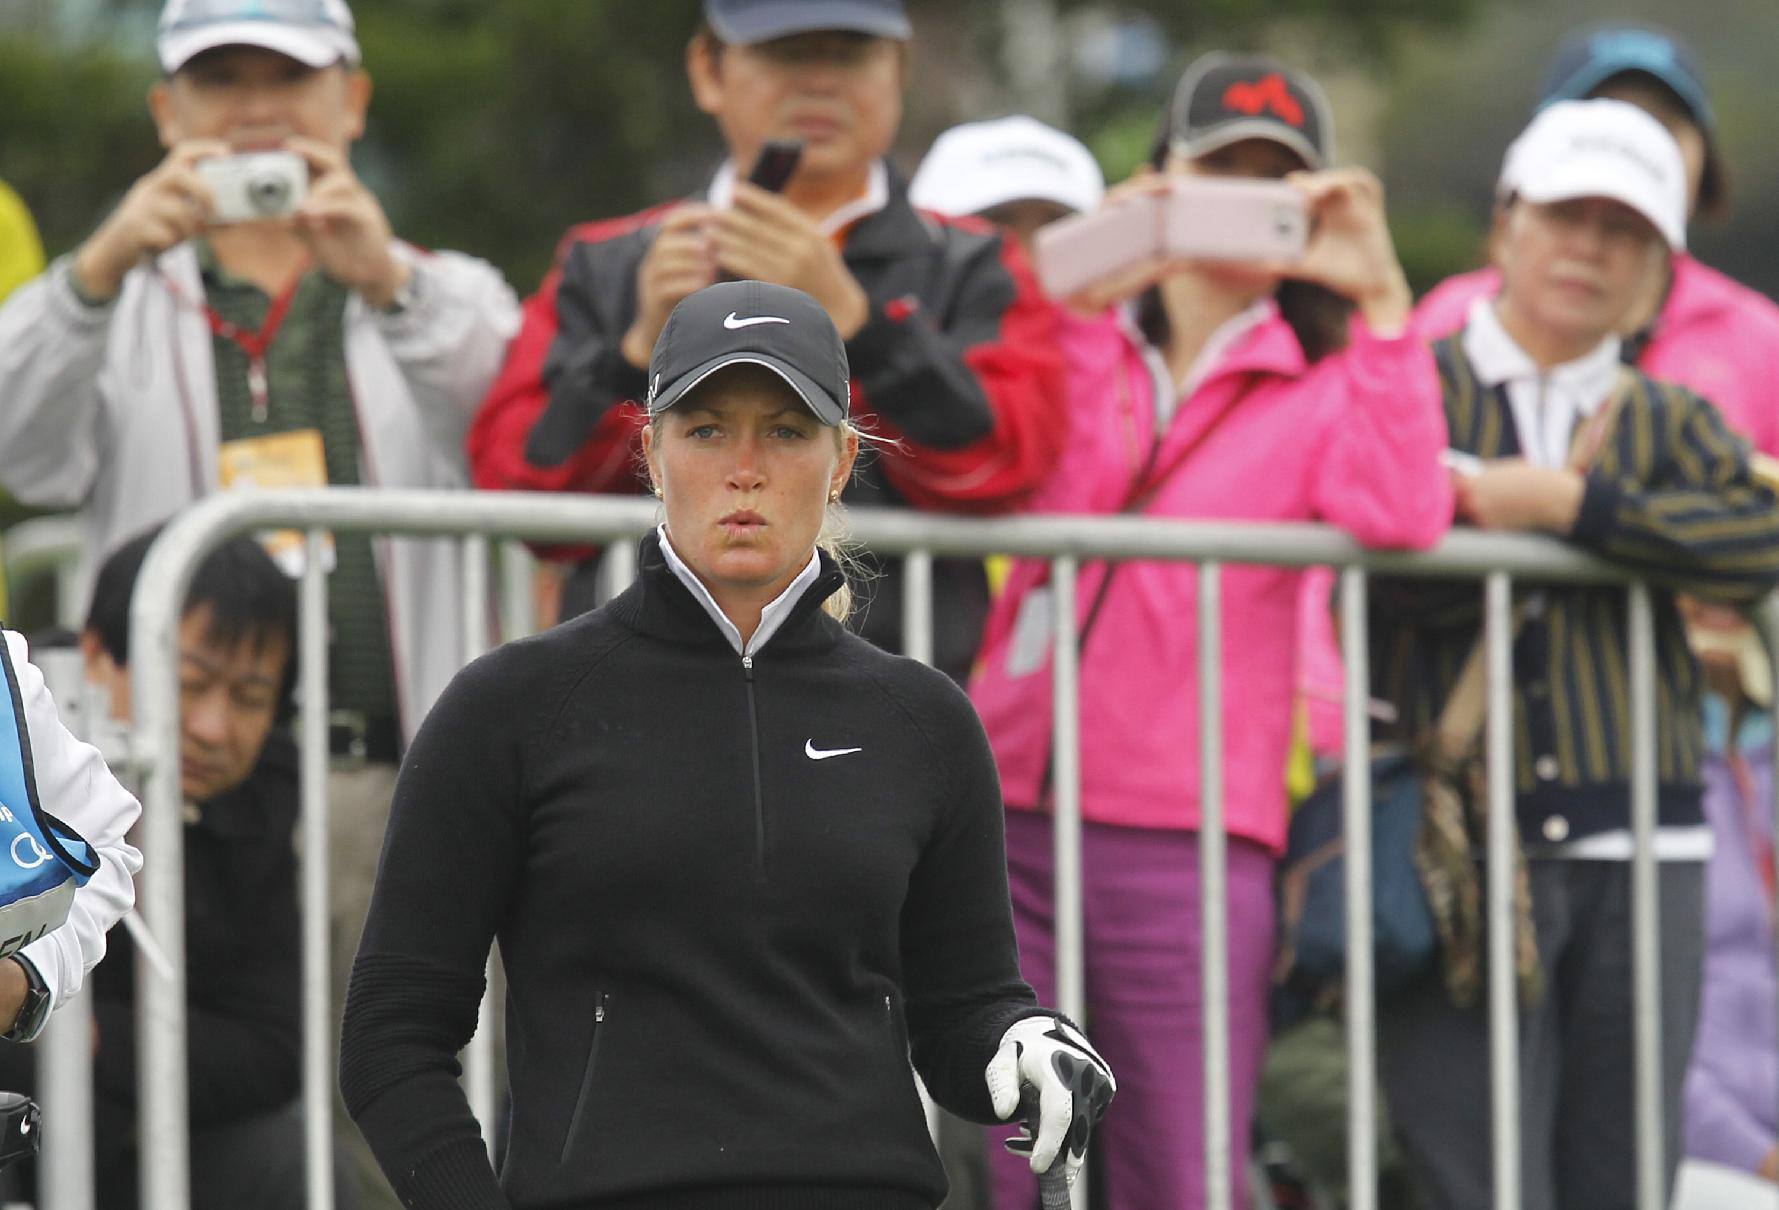 Suzann Pettersen of Norway, prepares to tee off on the 1st hole during the second round of the Sunrise LPGA Taiwan Championship tournament at the Sunrise Golf & Country Club, Friday, Oct. 25, 2013, in Yangmei, north eastern Taiwan